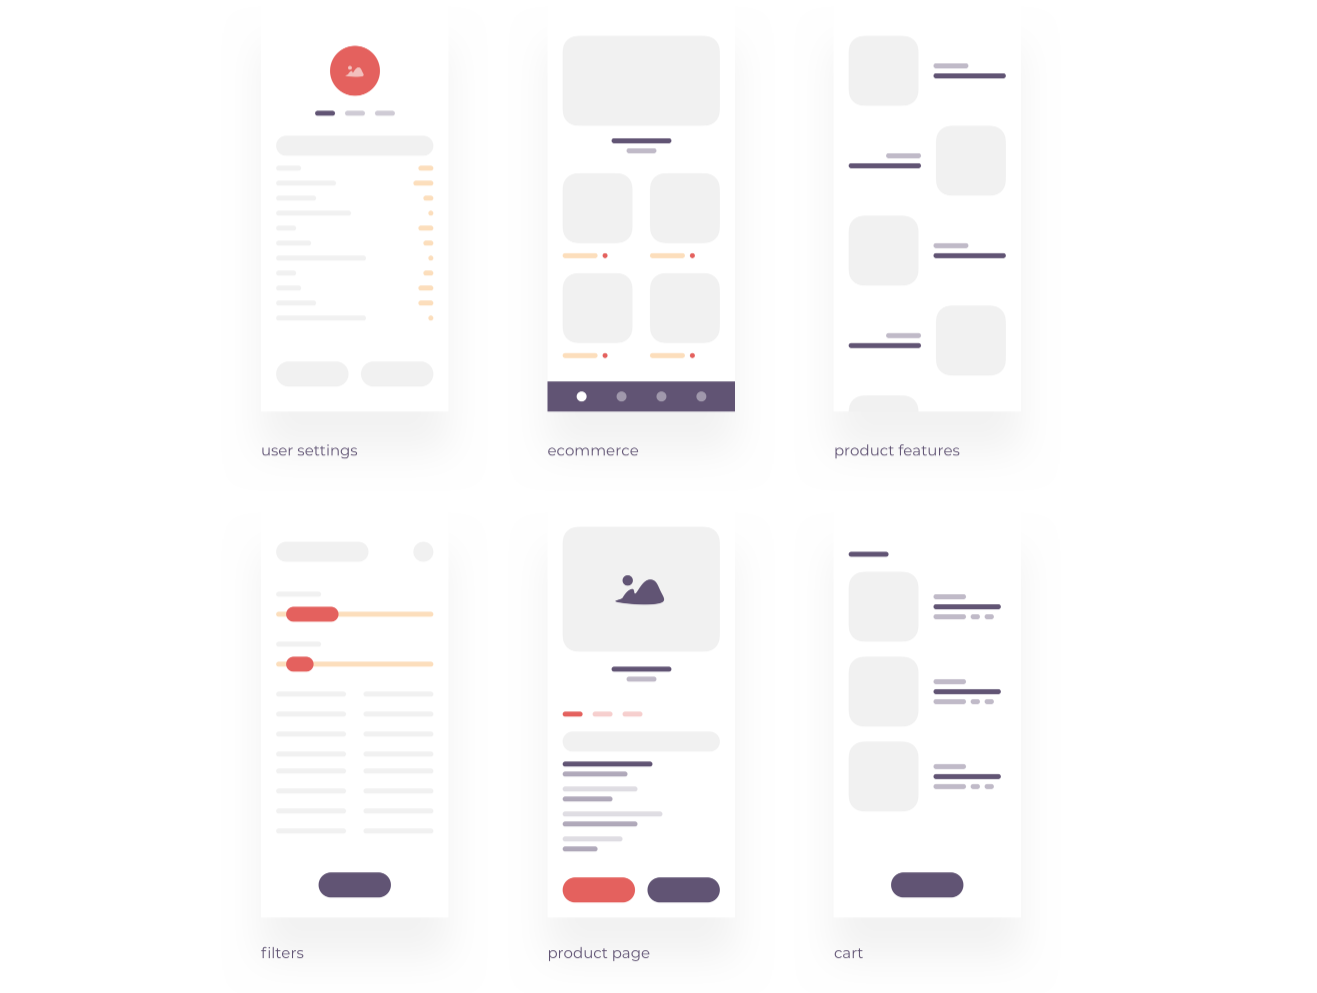 Wireframe kit free to download for iOS wireframe mockups. Screenshot examples of low fidelity app wireframe mockups